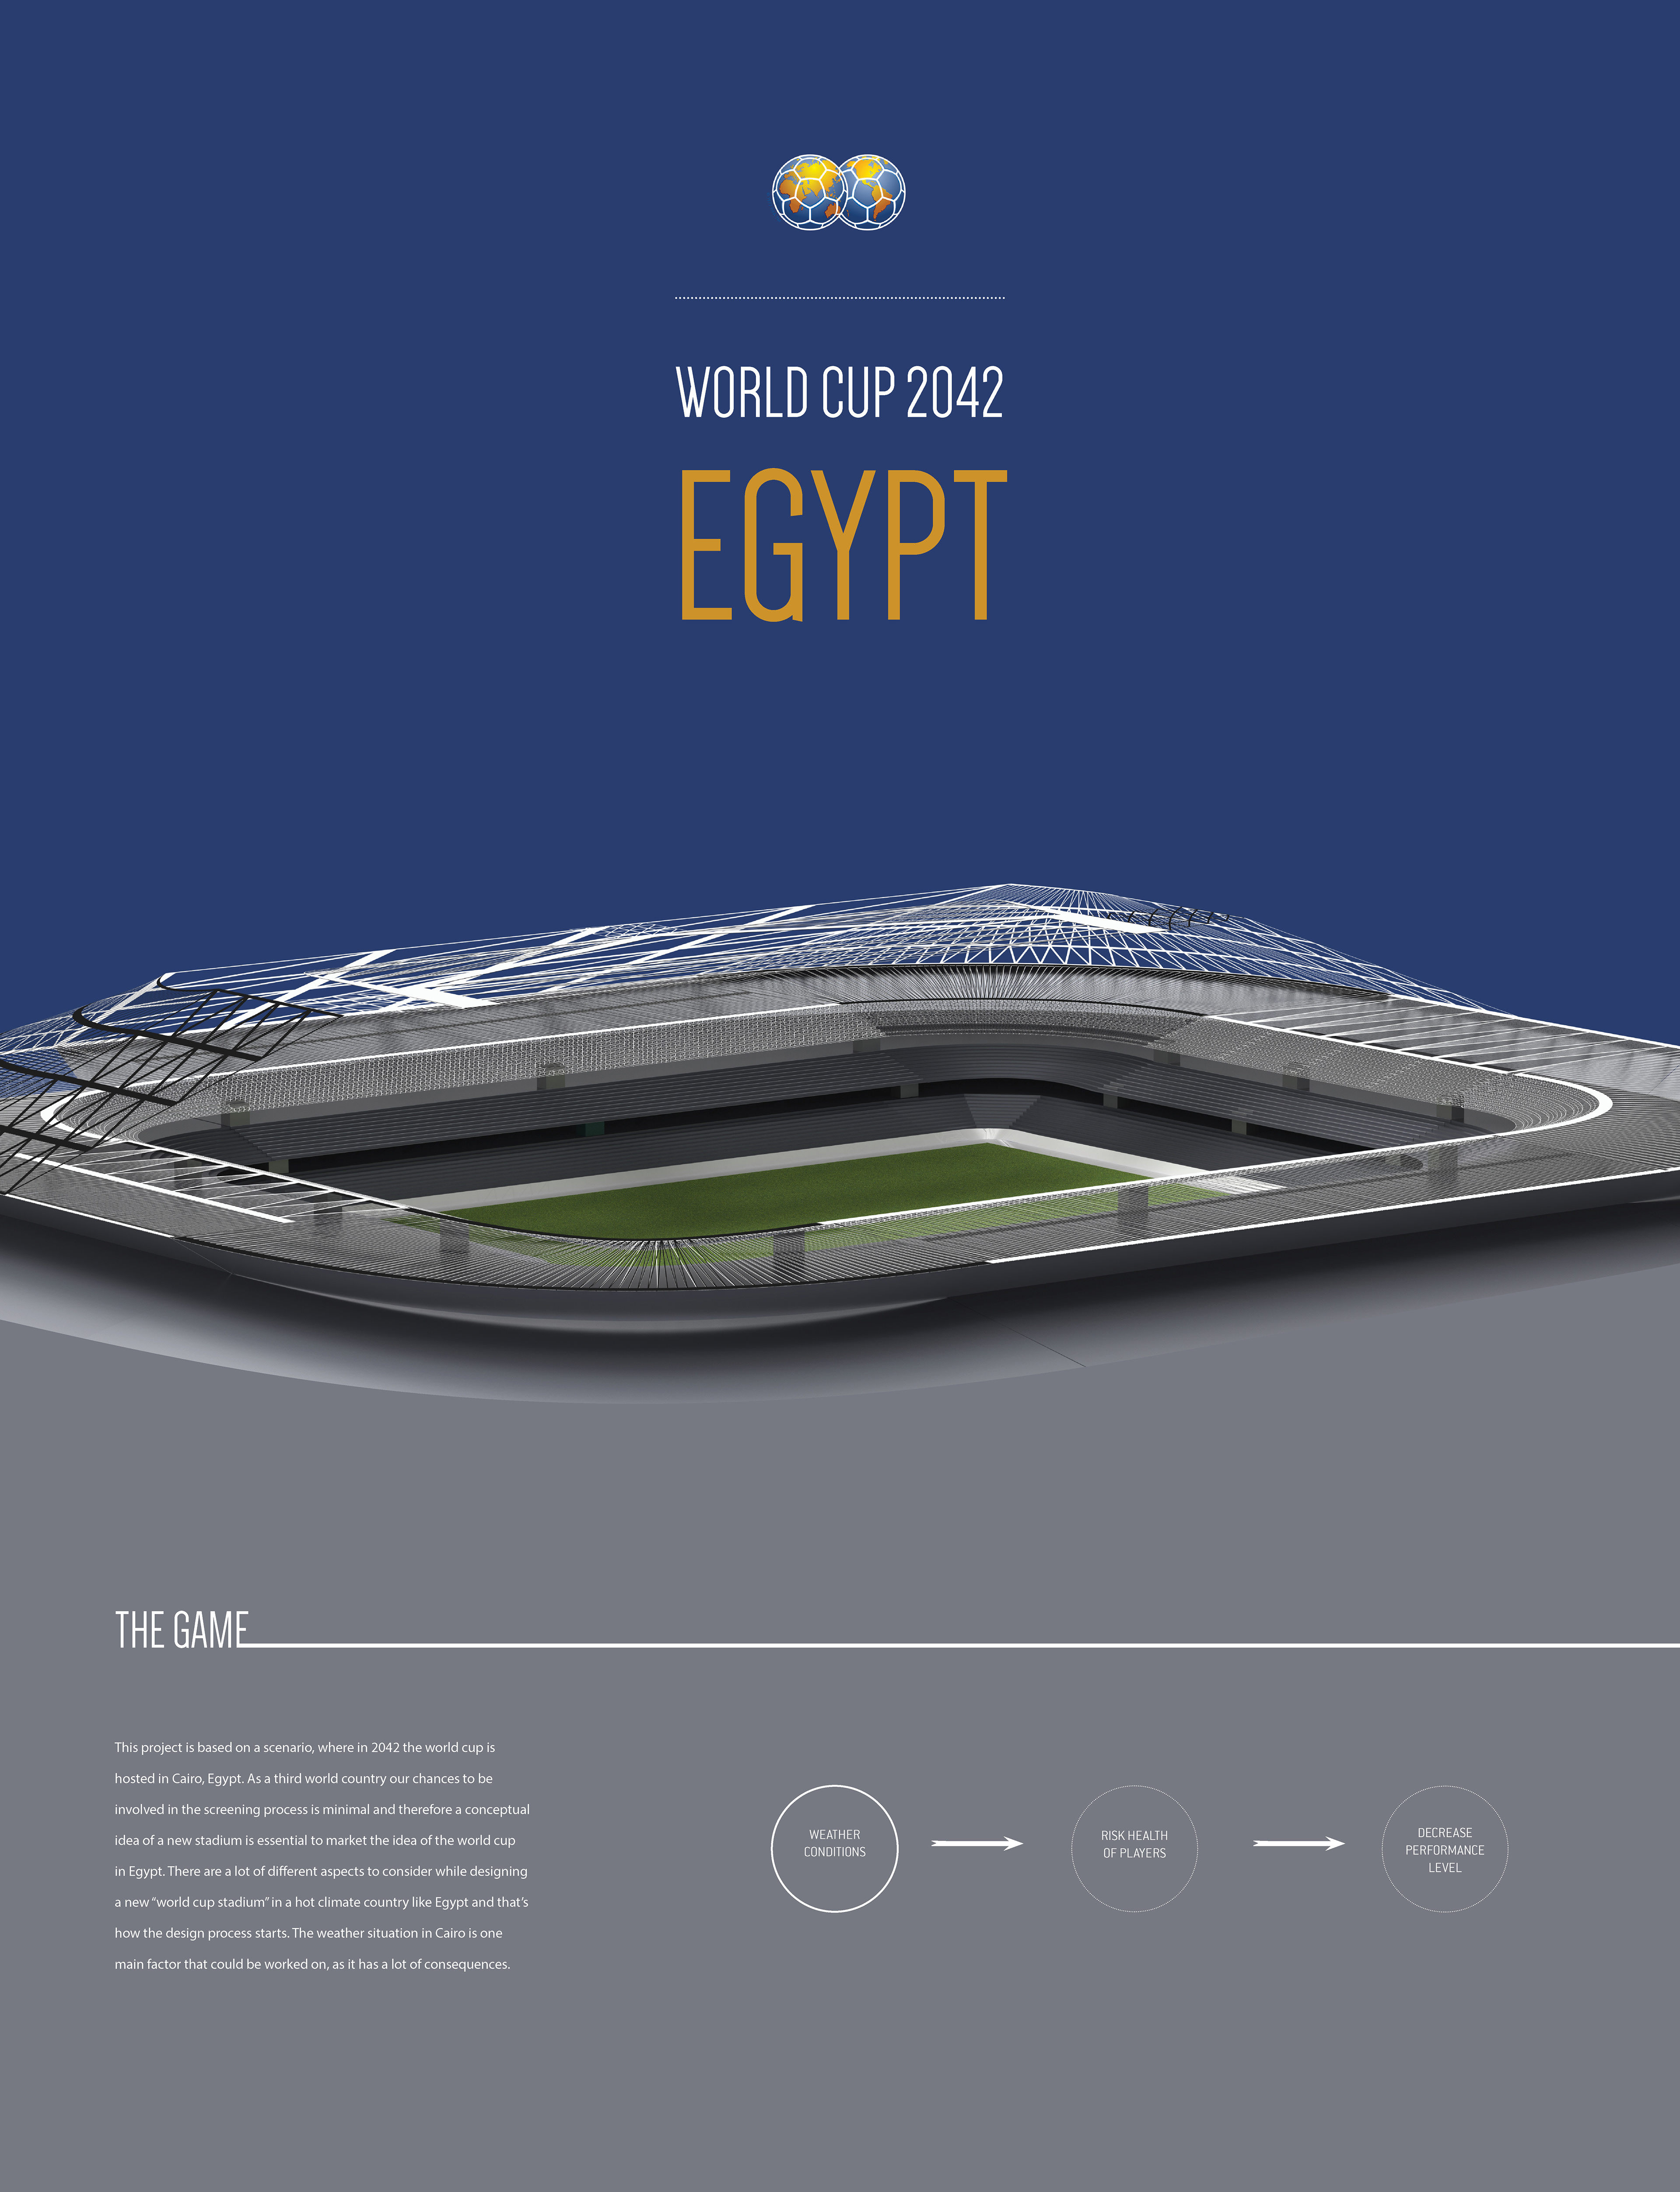 Problems And Thats Why The 2042 World Cup Stadium Should Ensure Safety Health Of Players Considering Cultural Environmental Issues